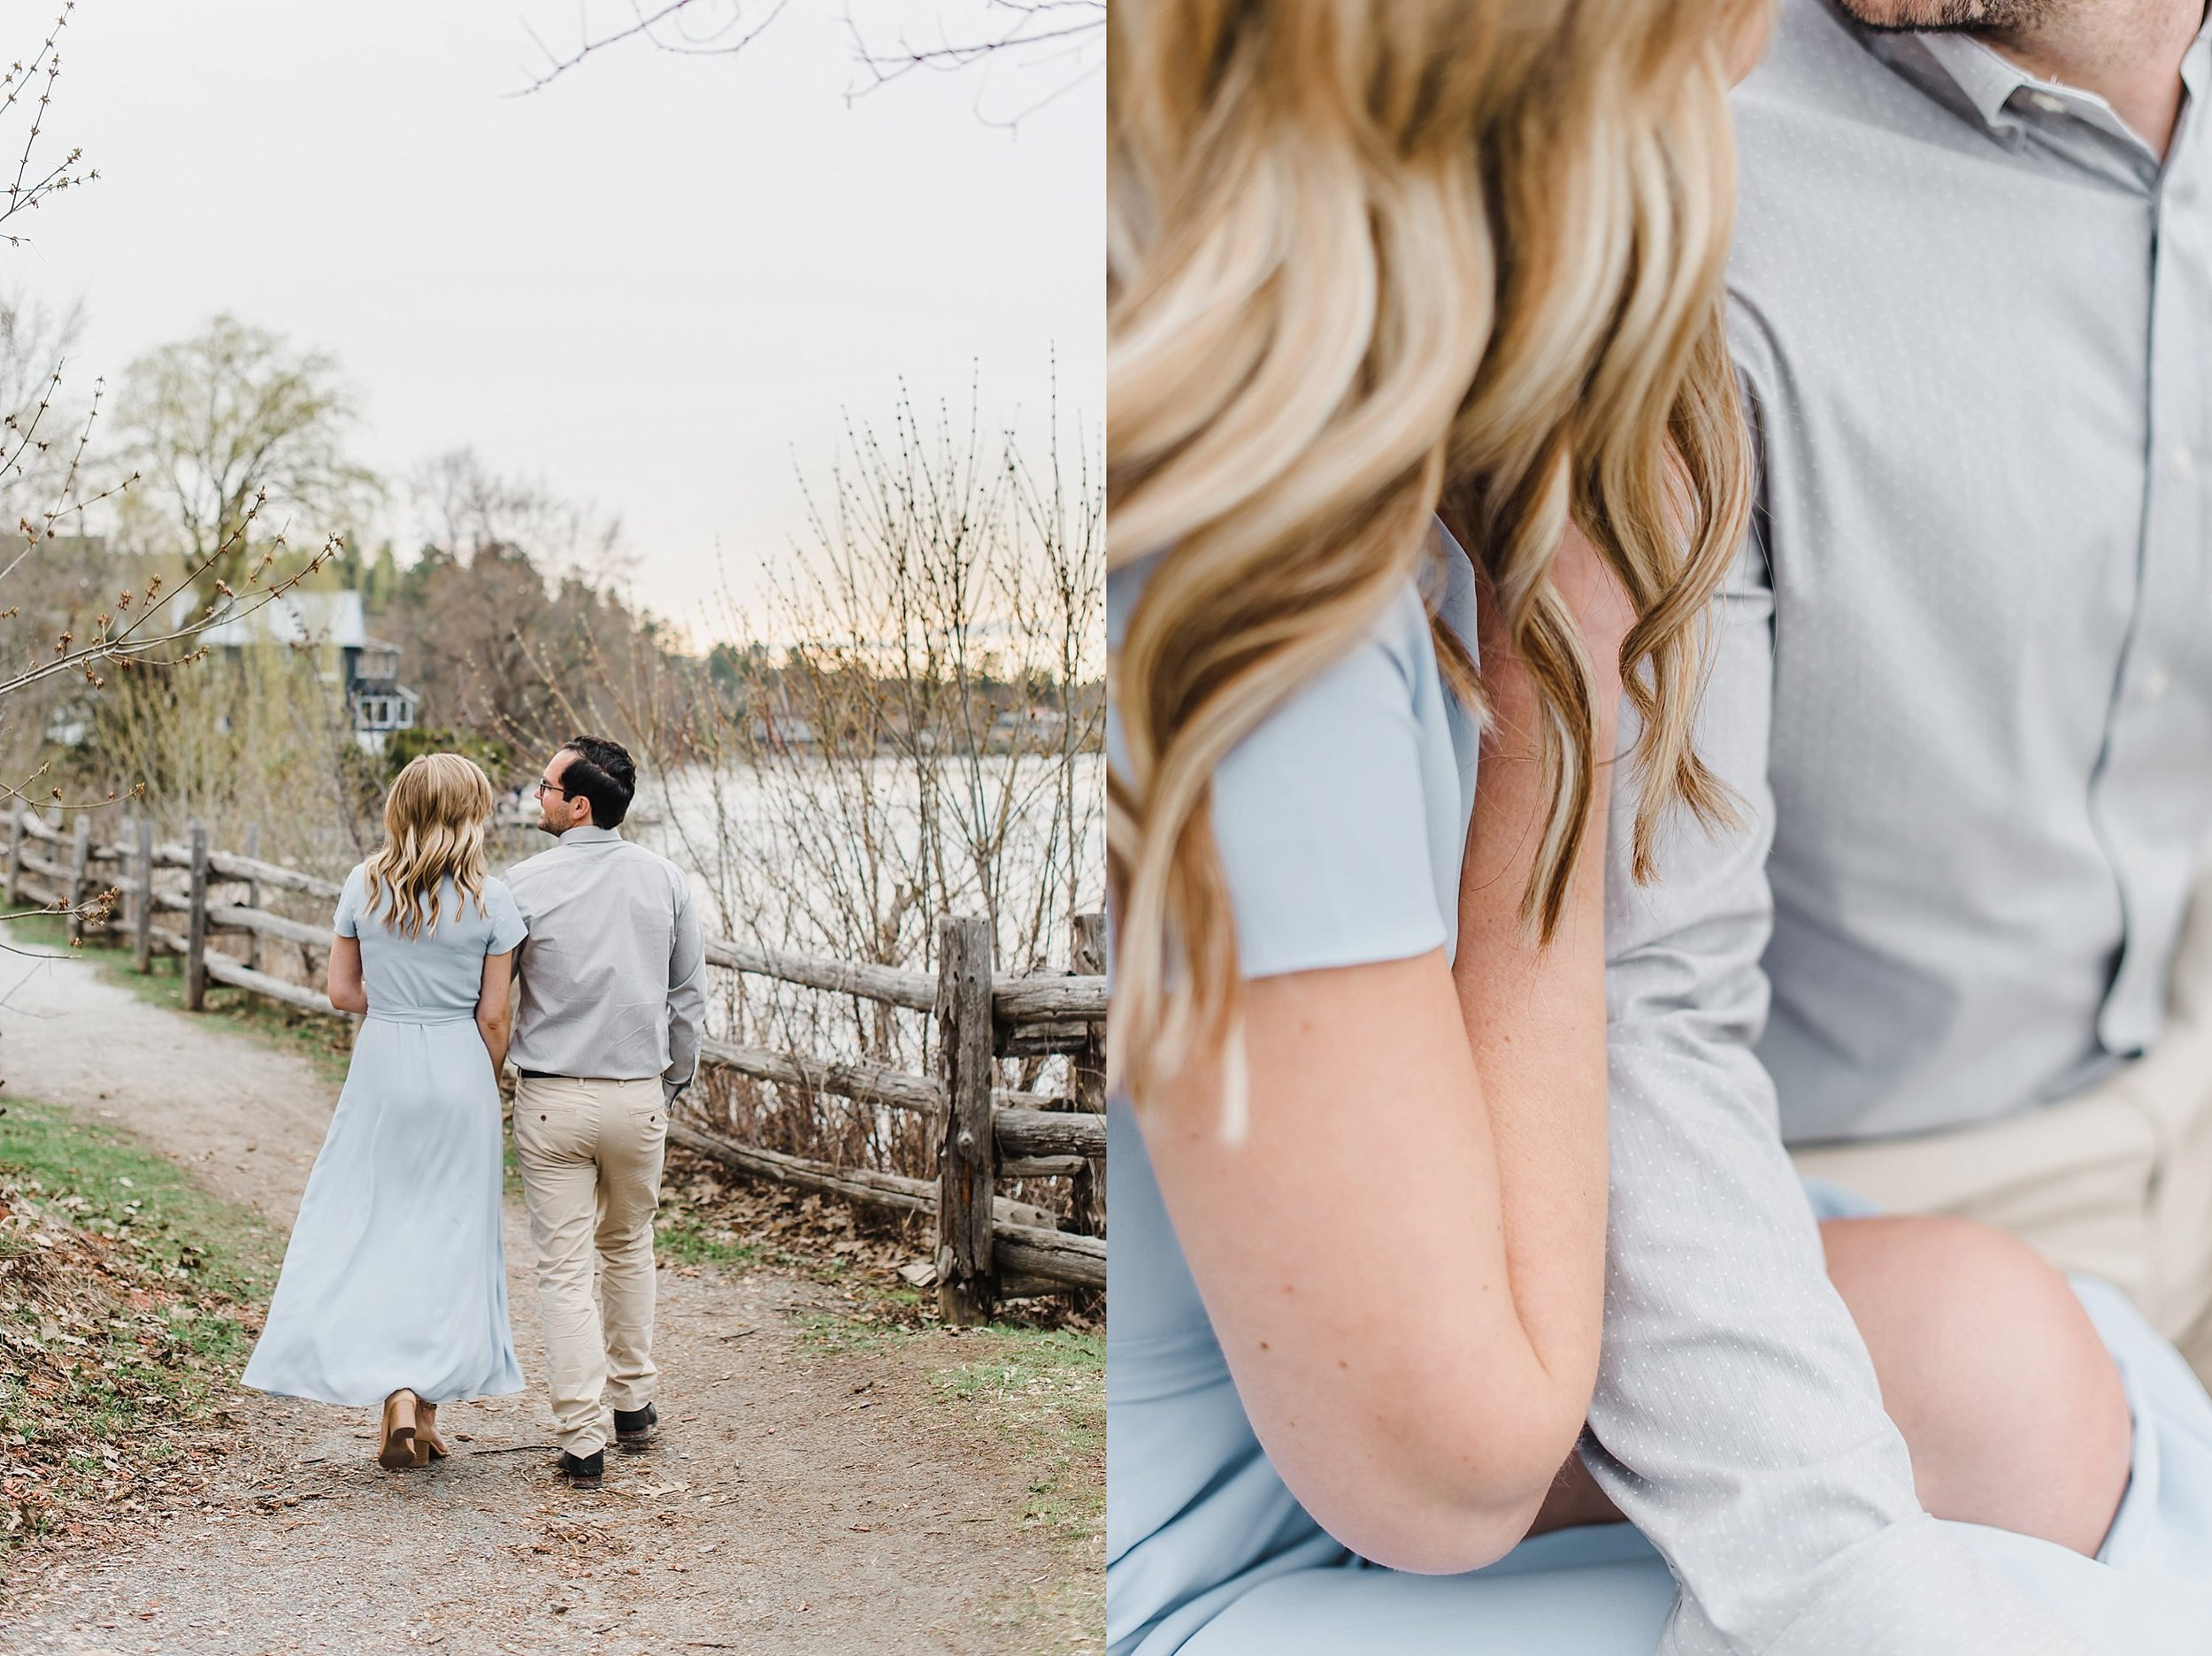 light airy indie fine art ottawa wedding photographer | Ali and Batoul Photography_0113.jpg